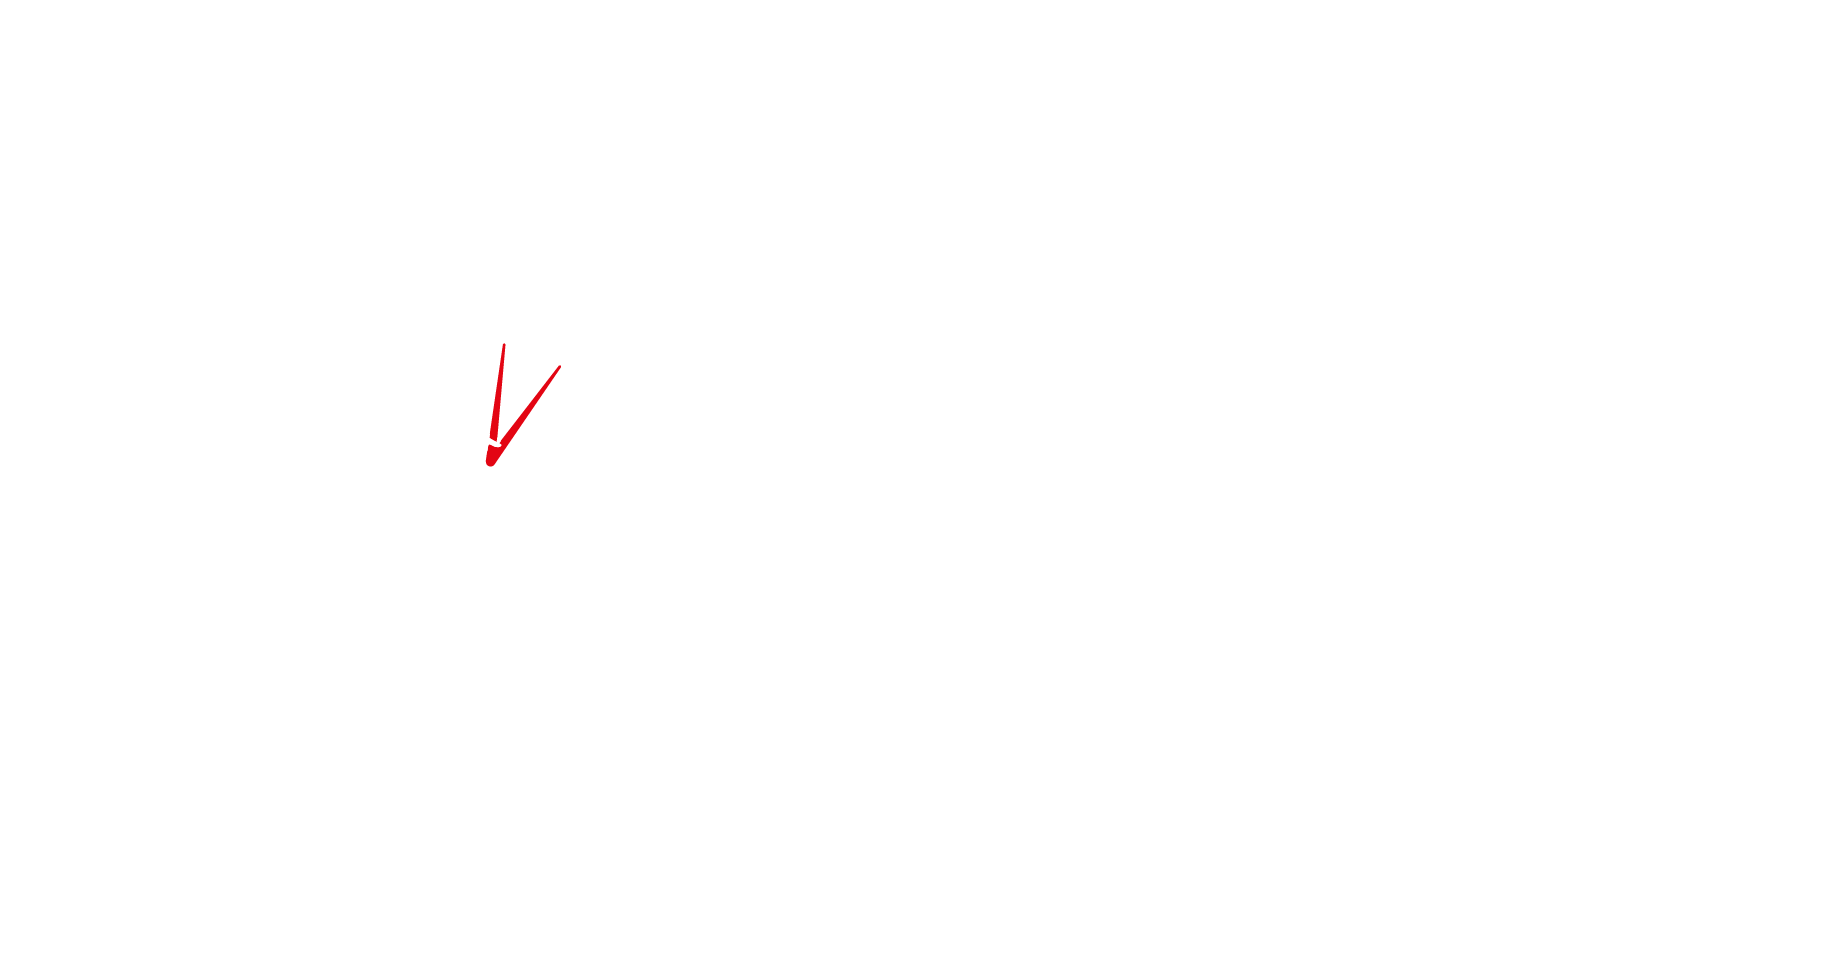 ICAEW-White